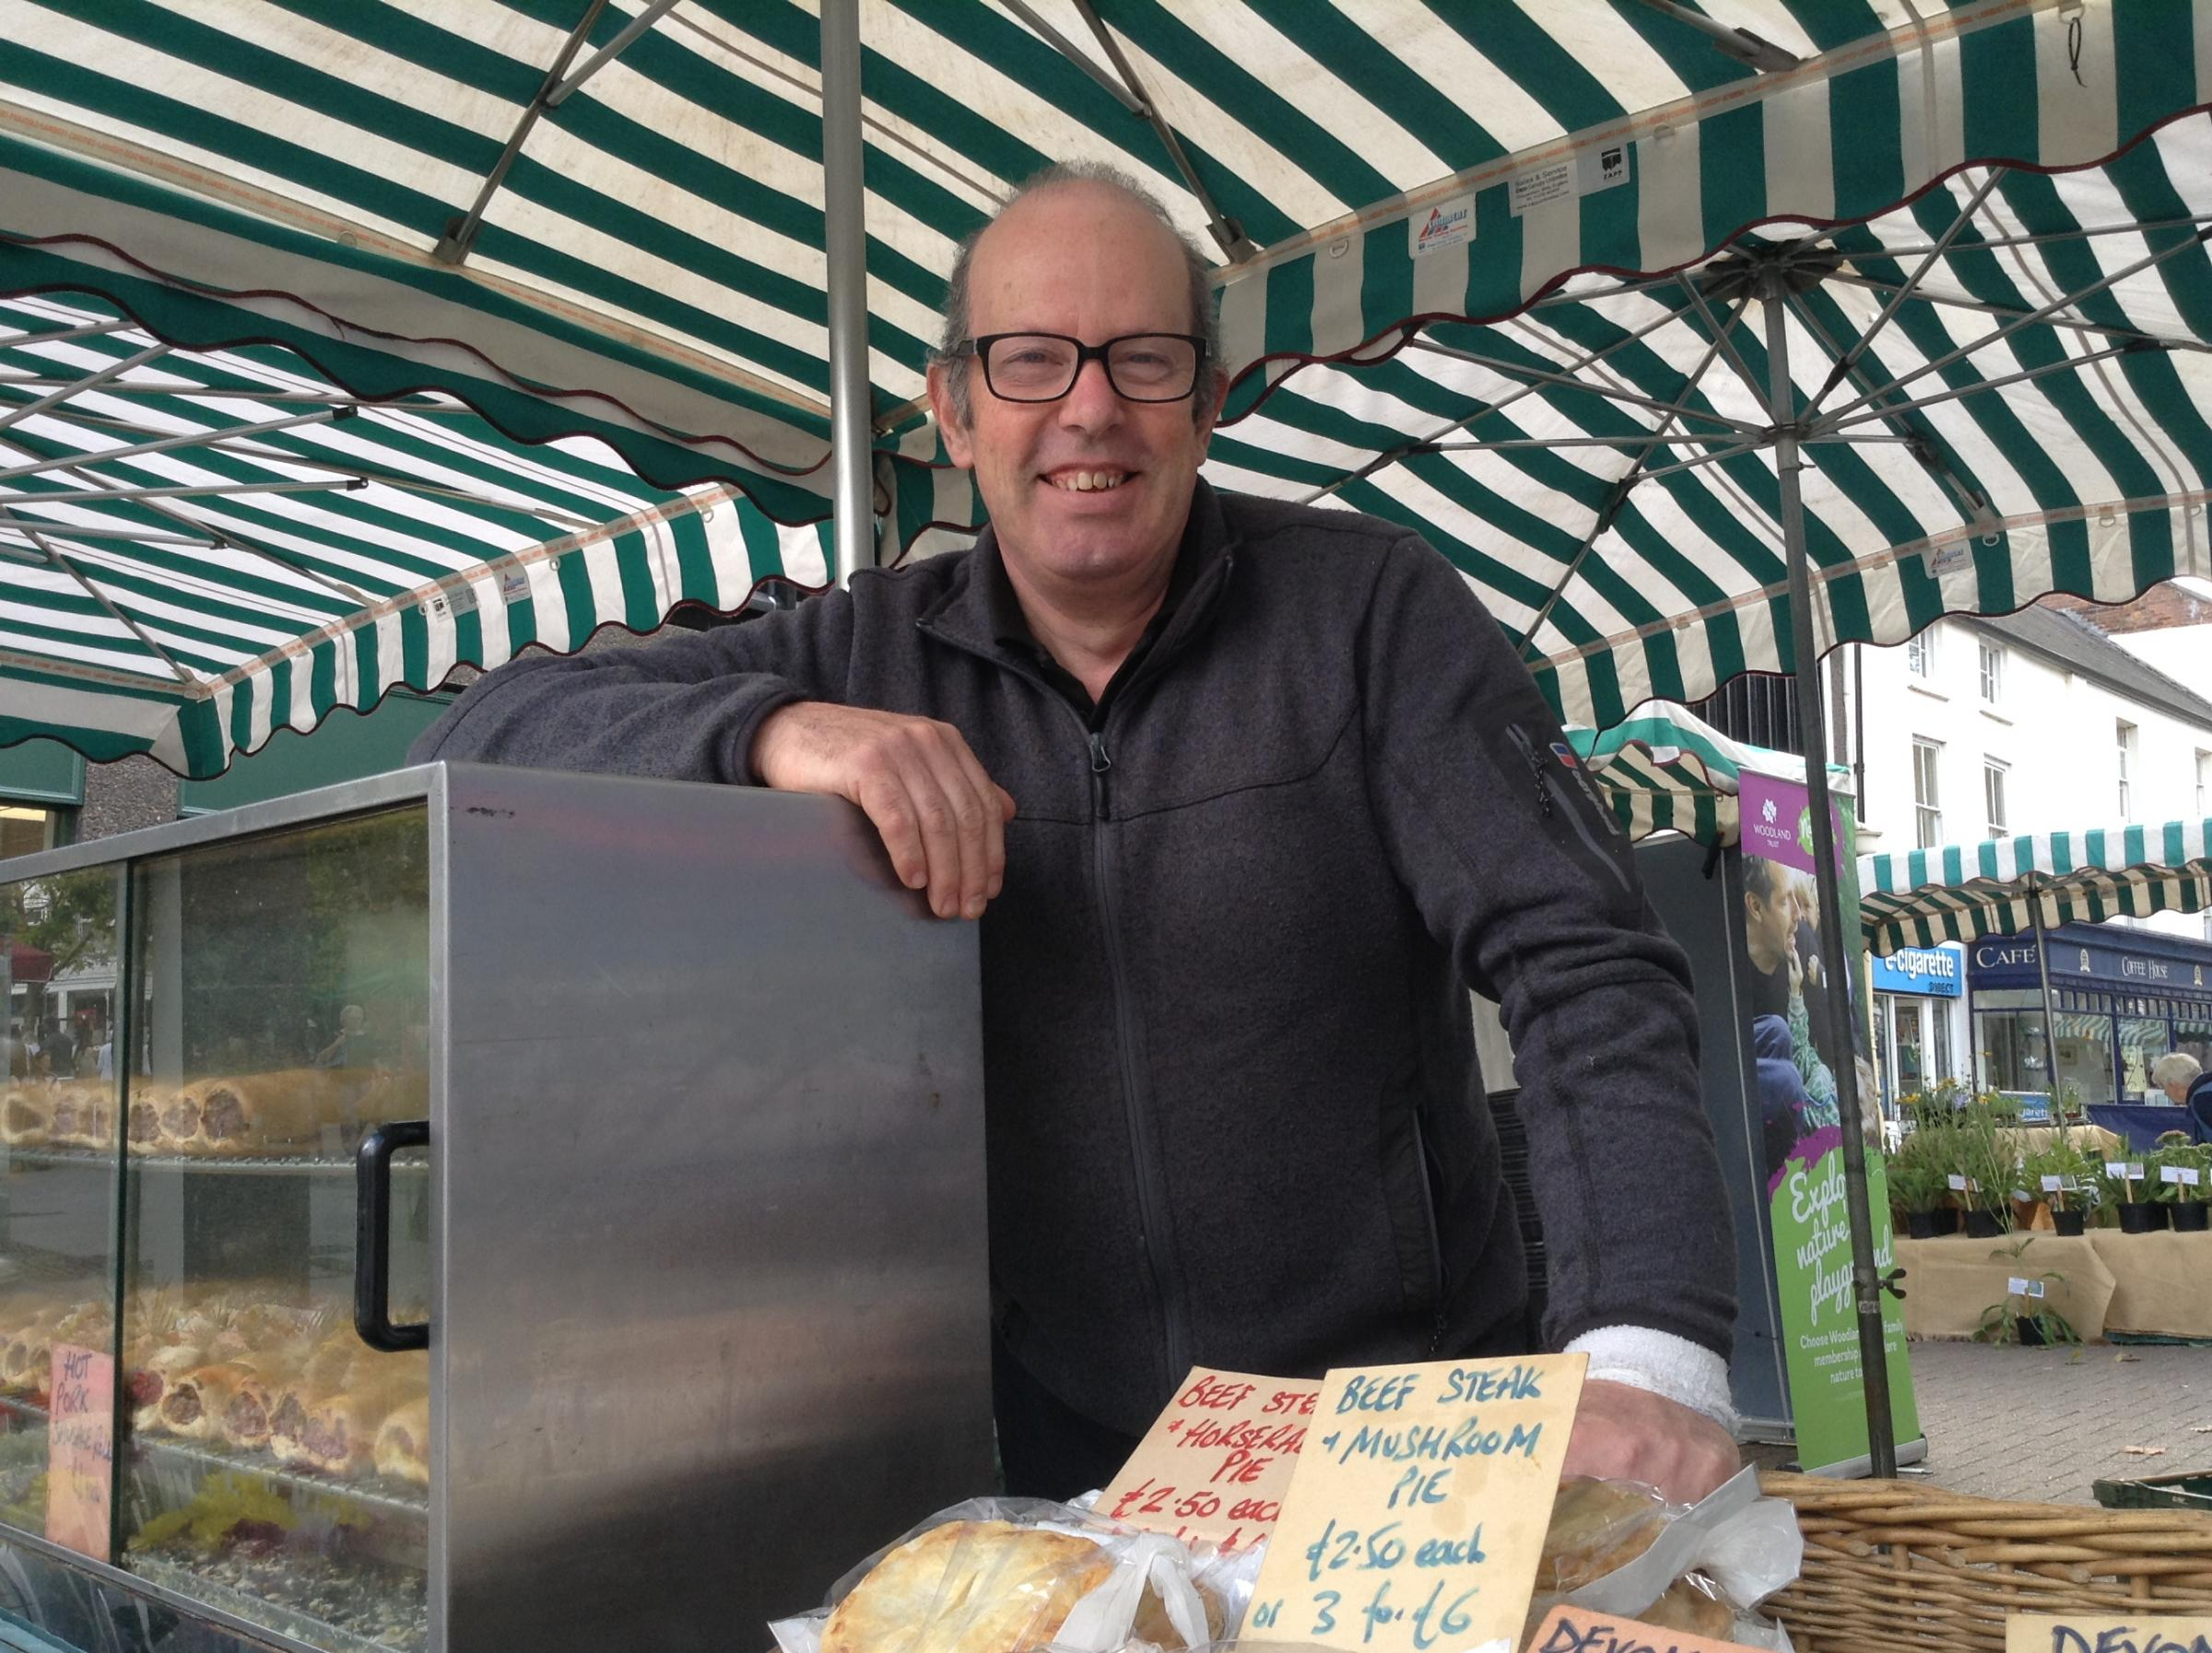 Little things mean big plans for Taunton Farmers' Market in 2018